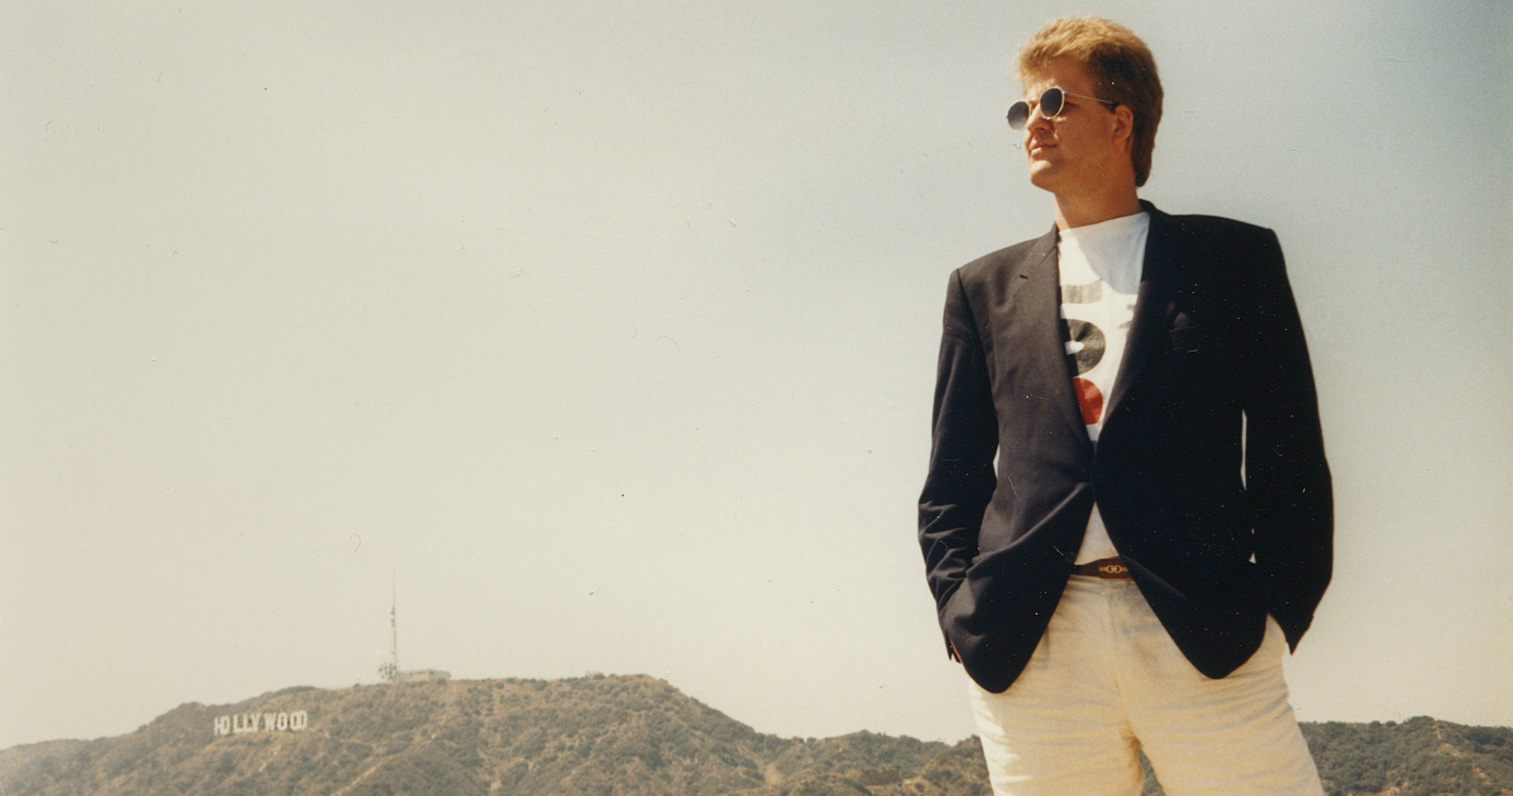 Hartung in Hollywood, 1989